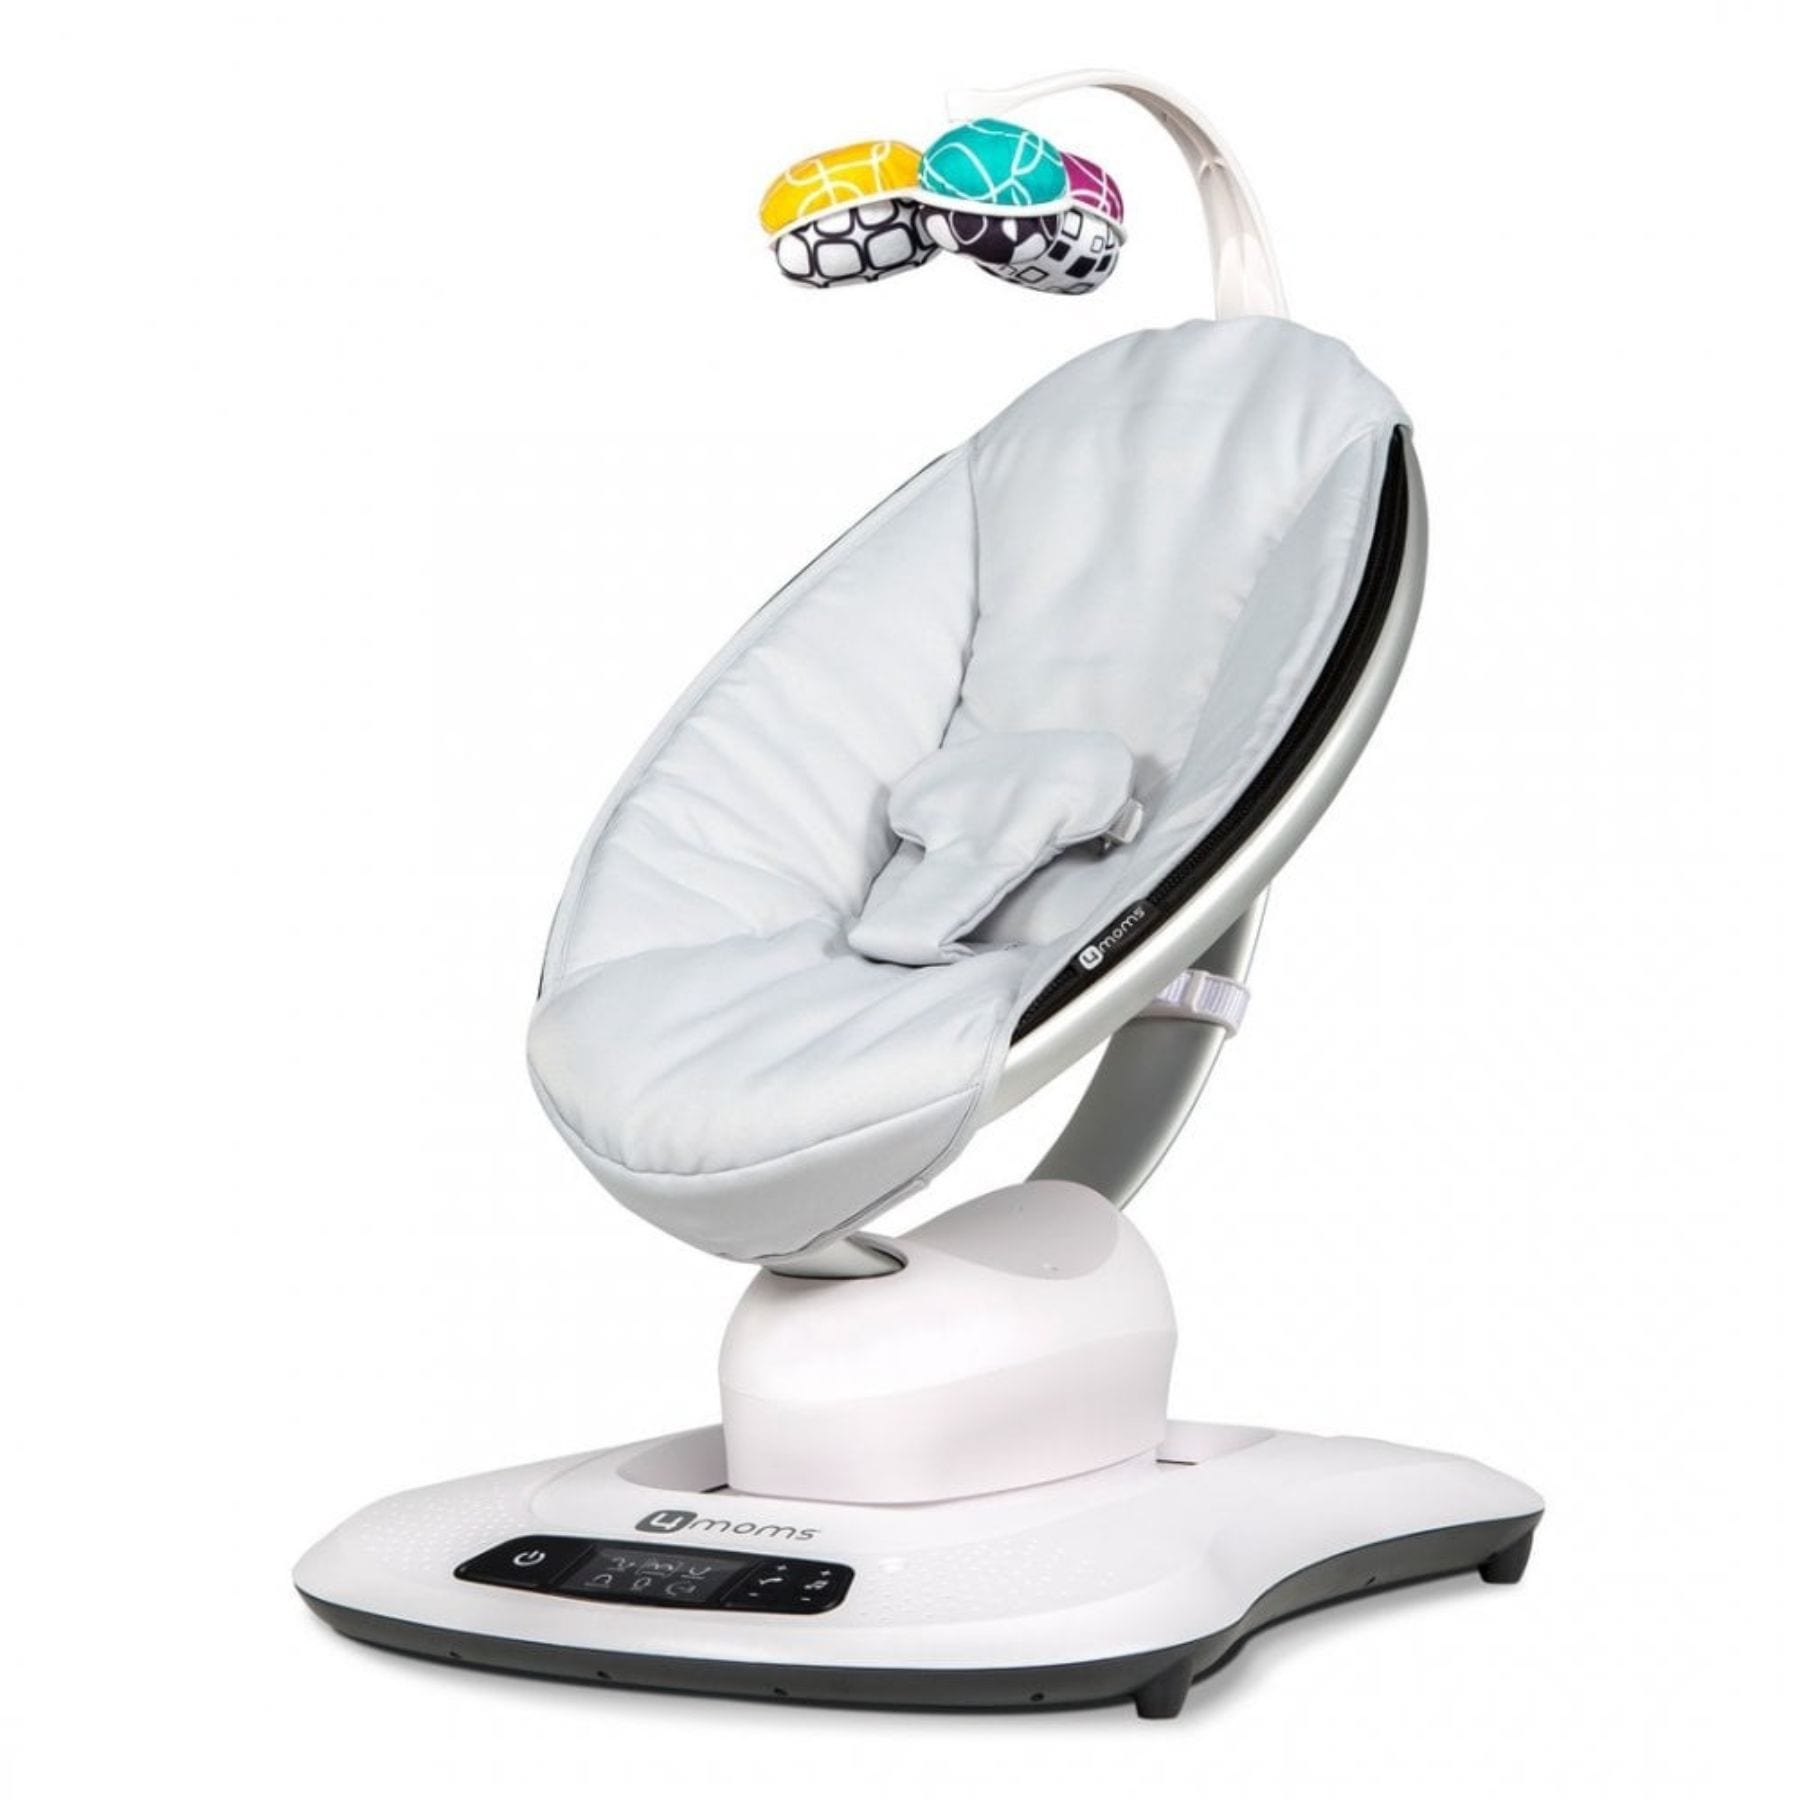 4Moms Mamaroo Bouncer - Classic Grey